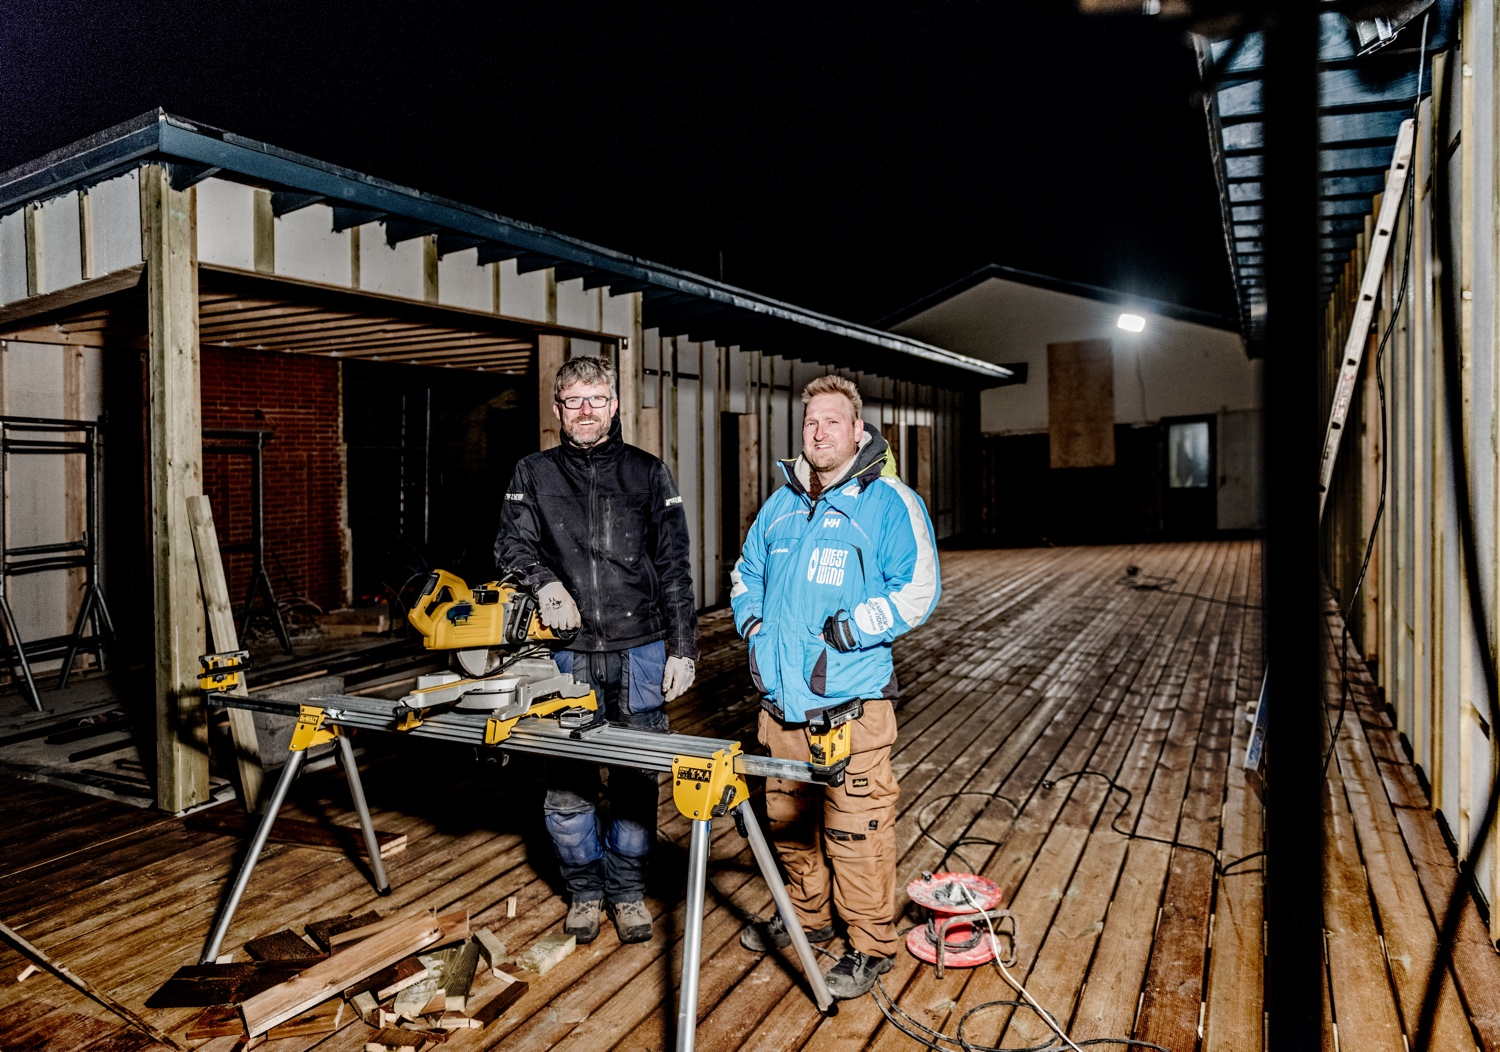 Prowd-makers-of-the-new-terrace_Ørhagevej-84.jpg